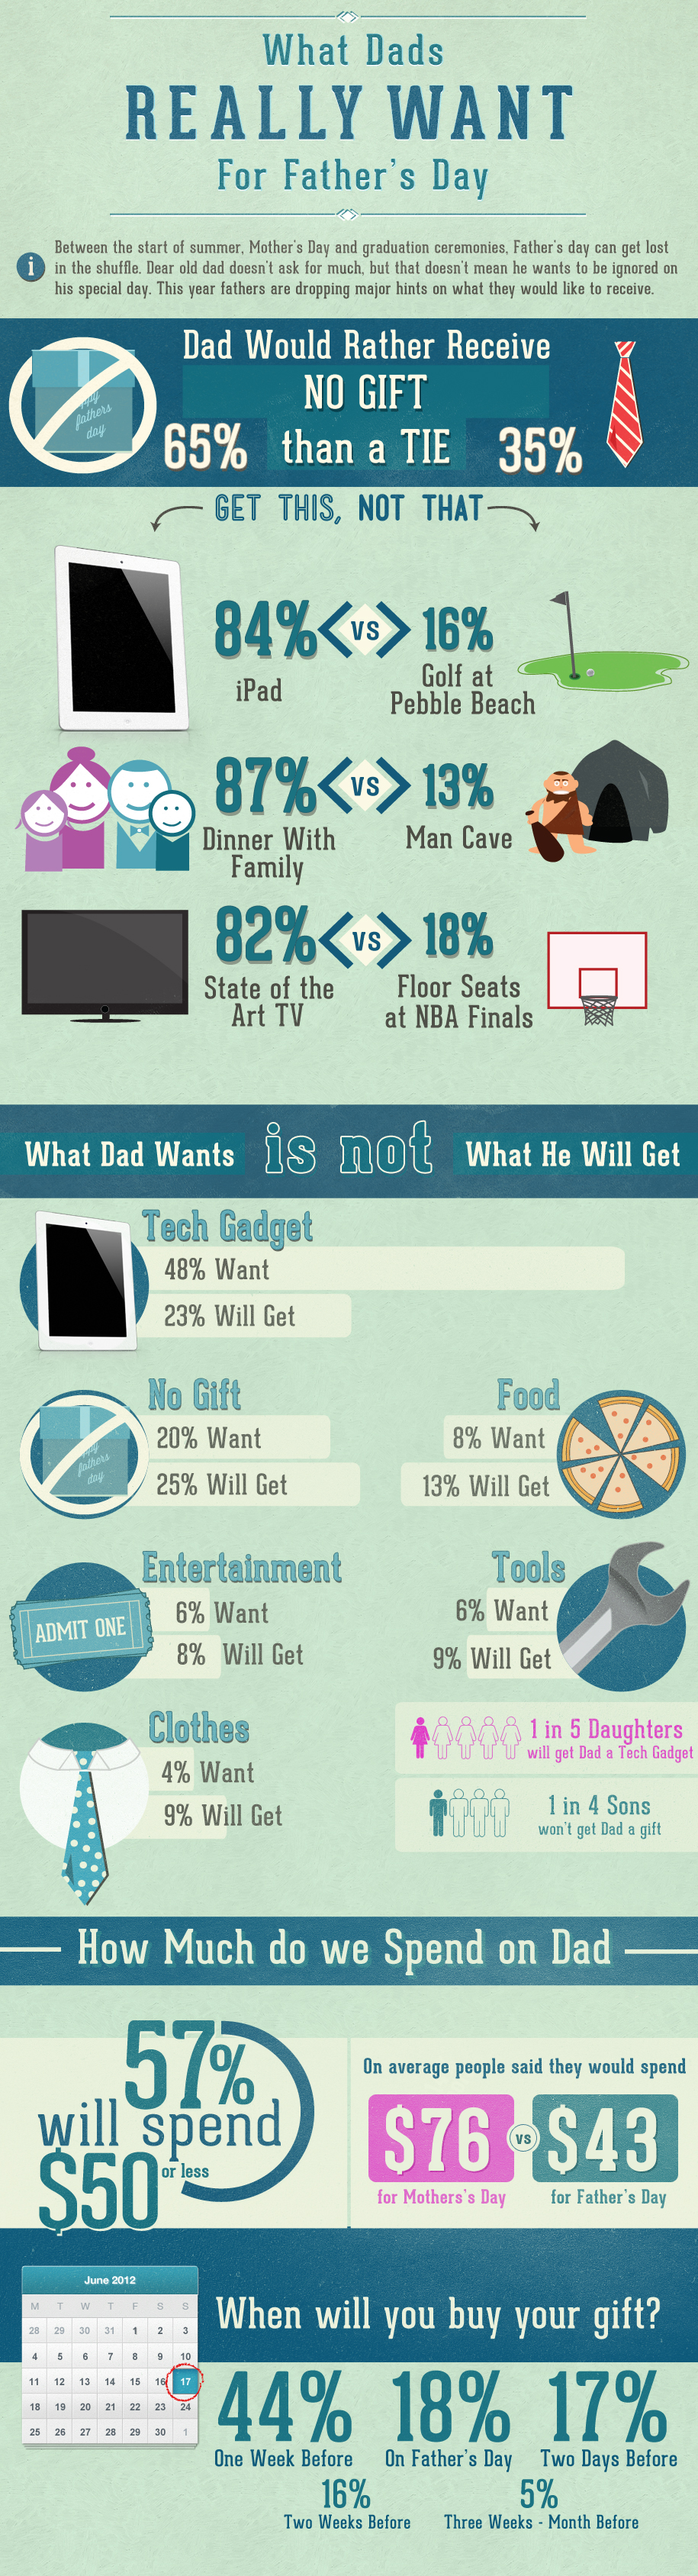 WHAT DADS REALLY WANT FOR FATHER'S DAY